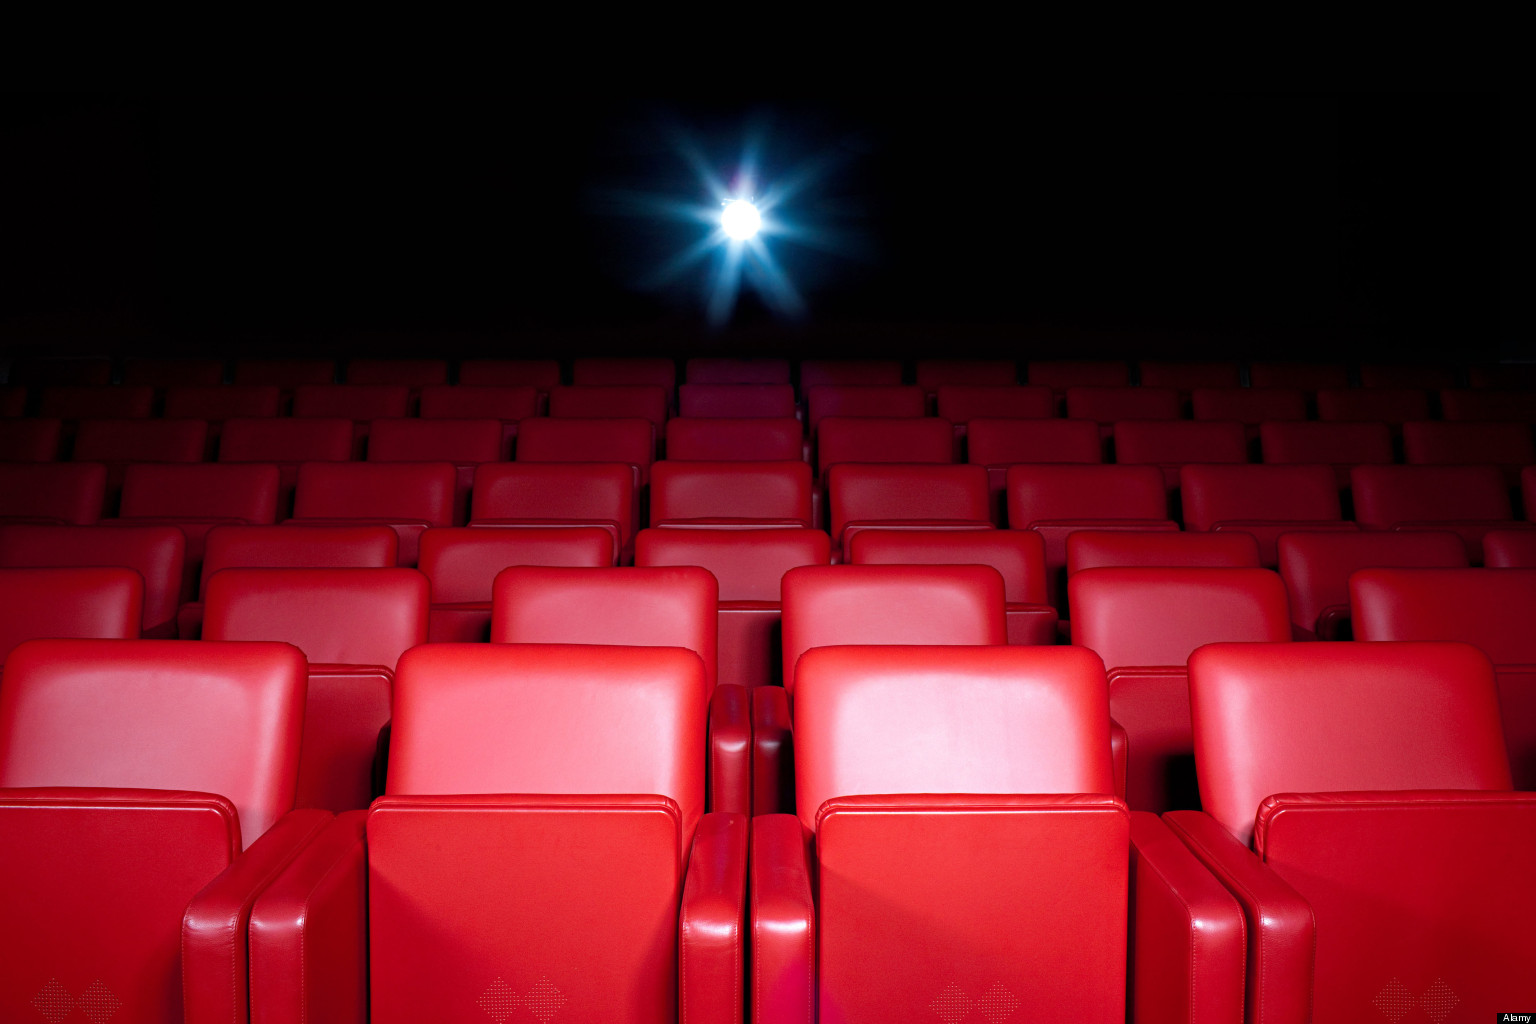 Slumping Movie theater ticket sales empty theater